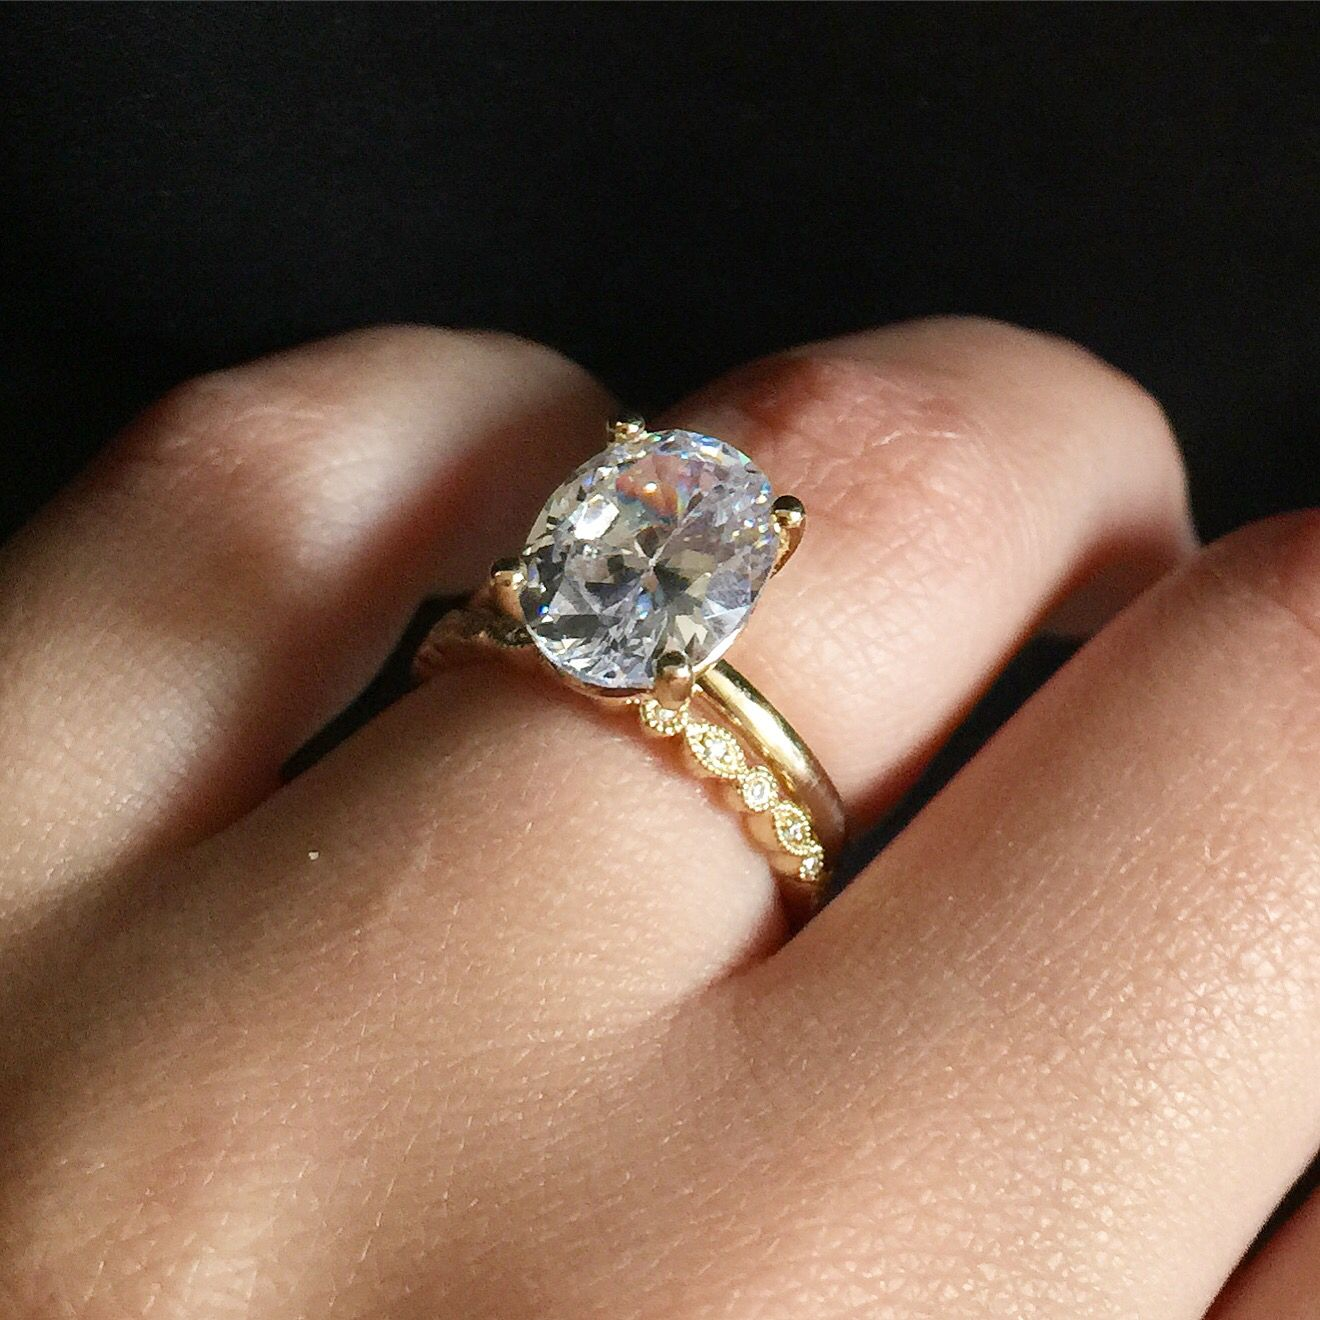 3 Carat Oval Diamond Engagement Ring Solitaire With Vintage Wedding Band  Oval Solitaire